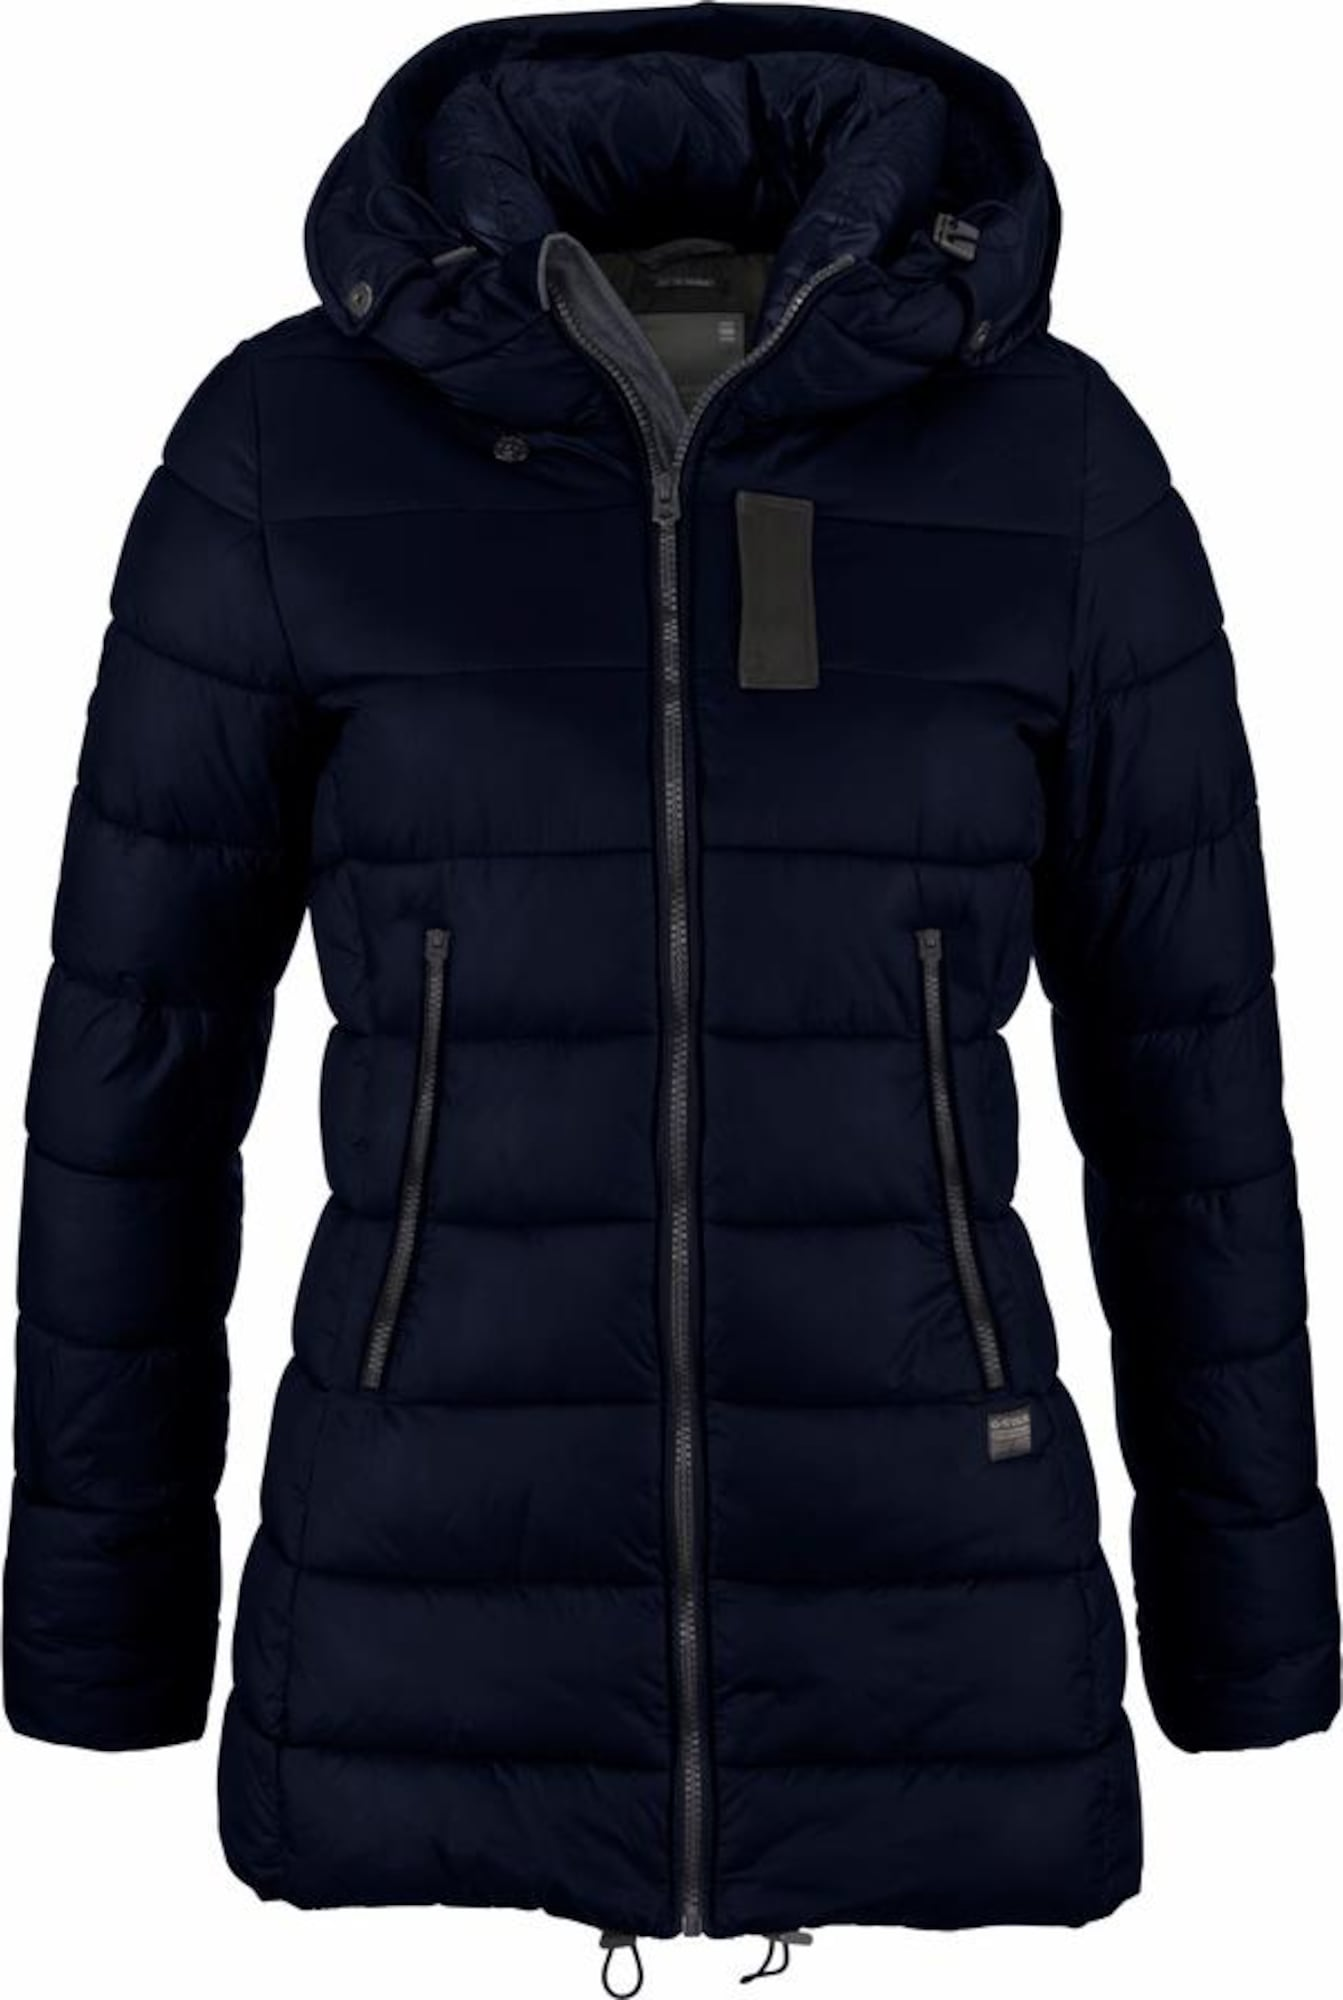 g star raw steppjacke 39 whistler 39 in blau about you. Black Bedroom Furniture Sets. Home Design Ideas